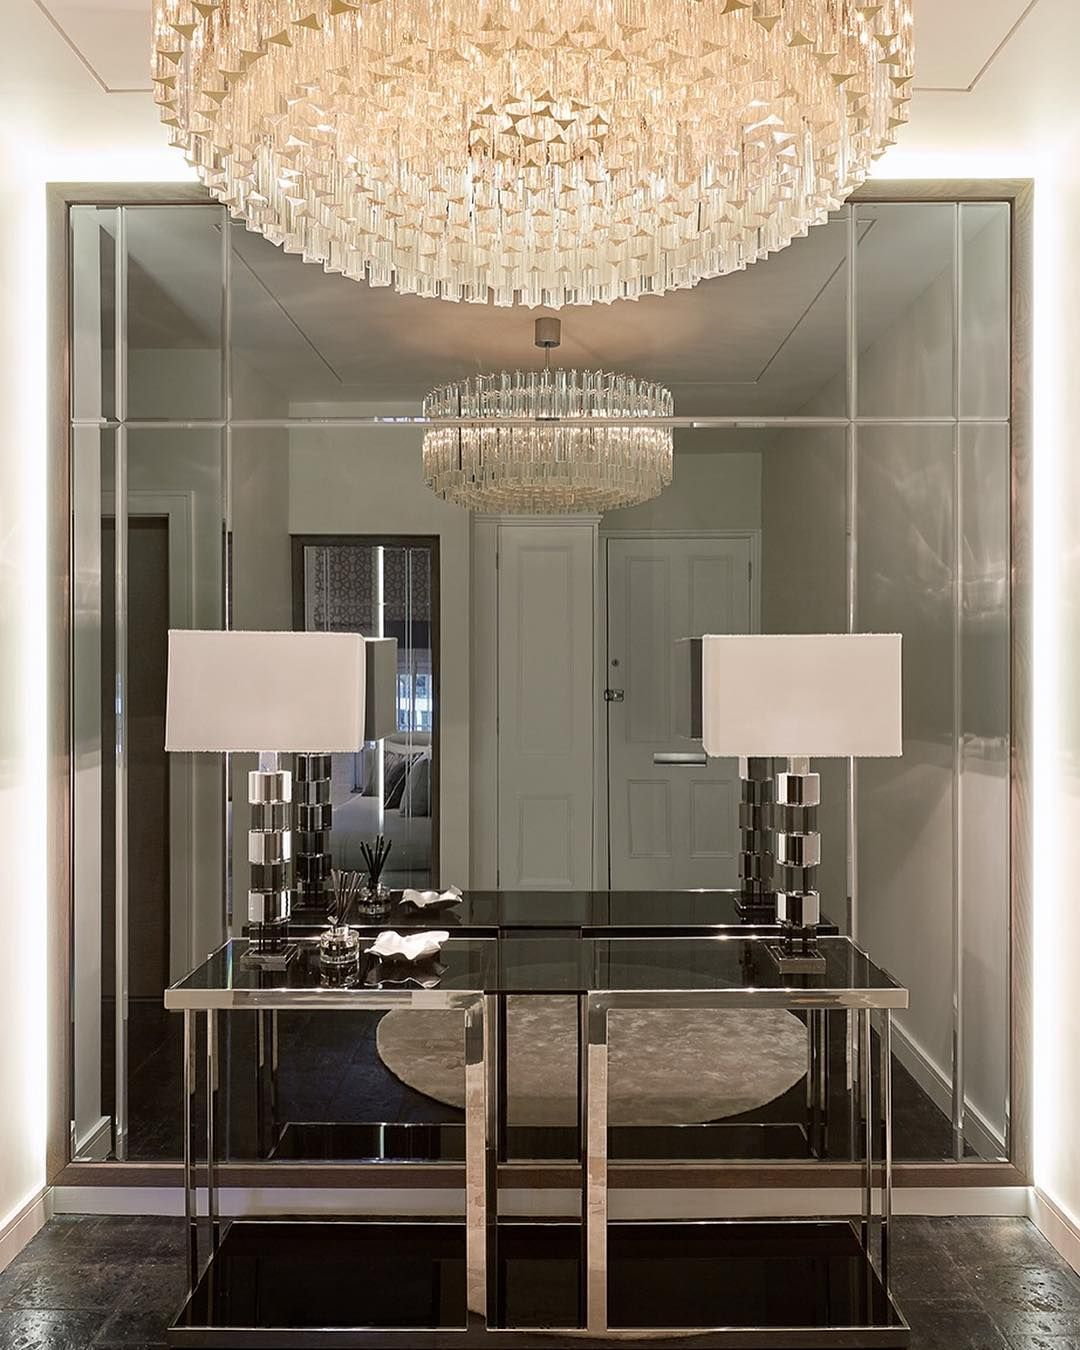 The Stunning Entrance Hall With Statement Chandelier And Mirrored